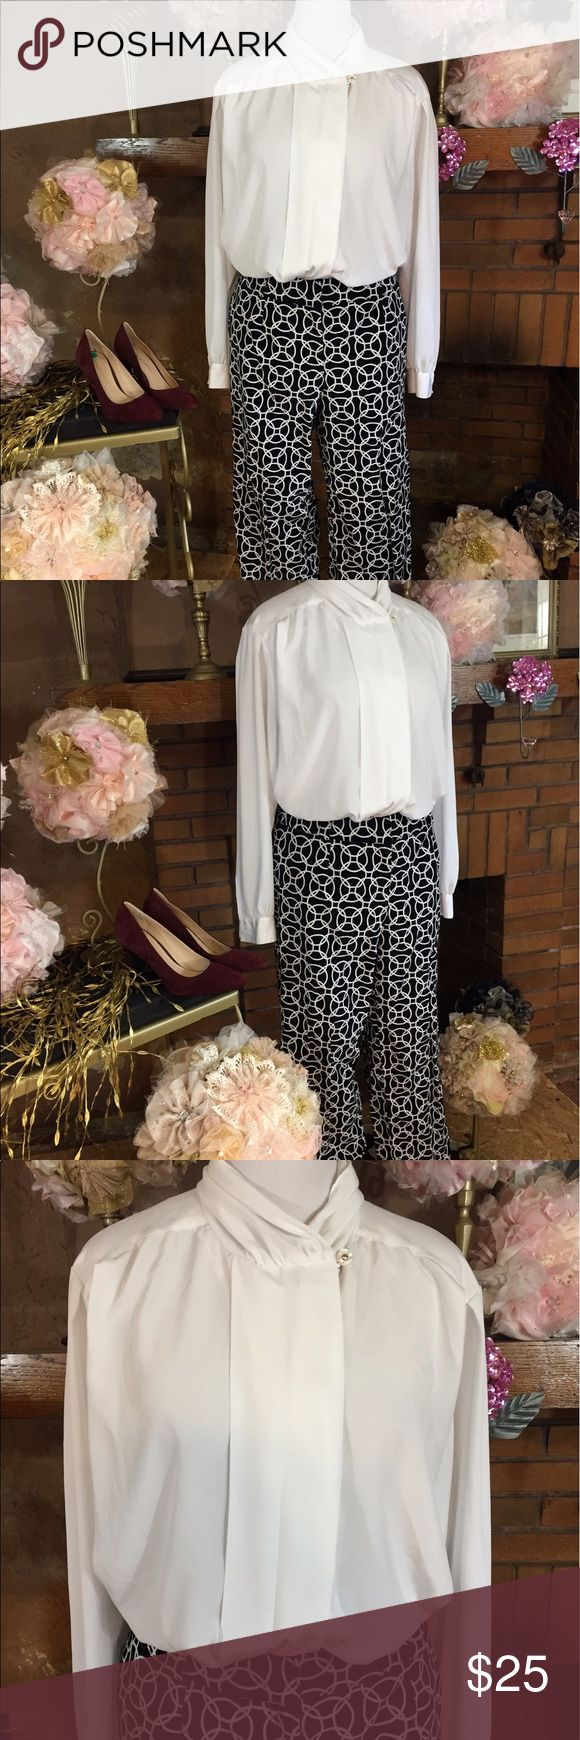 Talbots Woman Petite trousers vintage top Talbots Woman Petite black and white, velour, geometric print, straight leg trousers size 16P. Approx measurements are 38 inch waist and 28 inch inseam. See pictures for material composition. Vintage Chaus Woman white button down shirt sz 20W. Approx measurements are 50 inch circumference and 30 inches long. Both are previously owned but in good condition. Shoes are available for sale in another listing. Outfit priced as a whole but can separate…